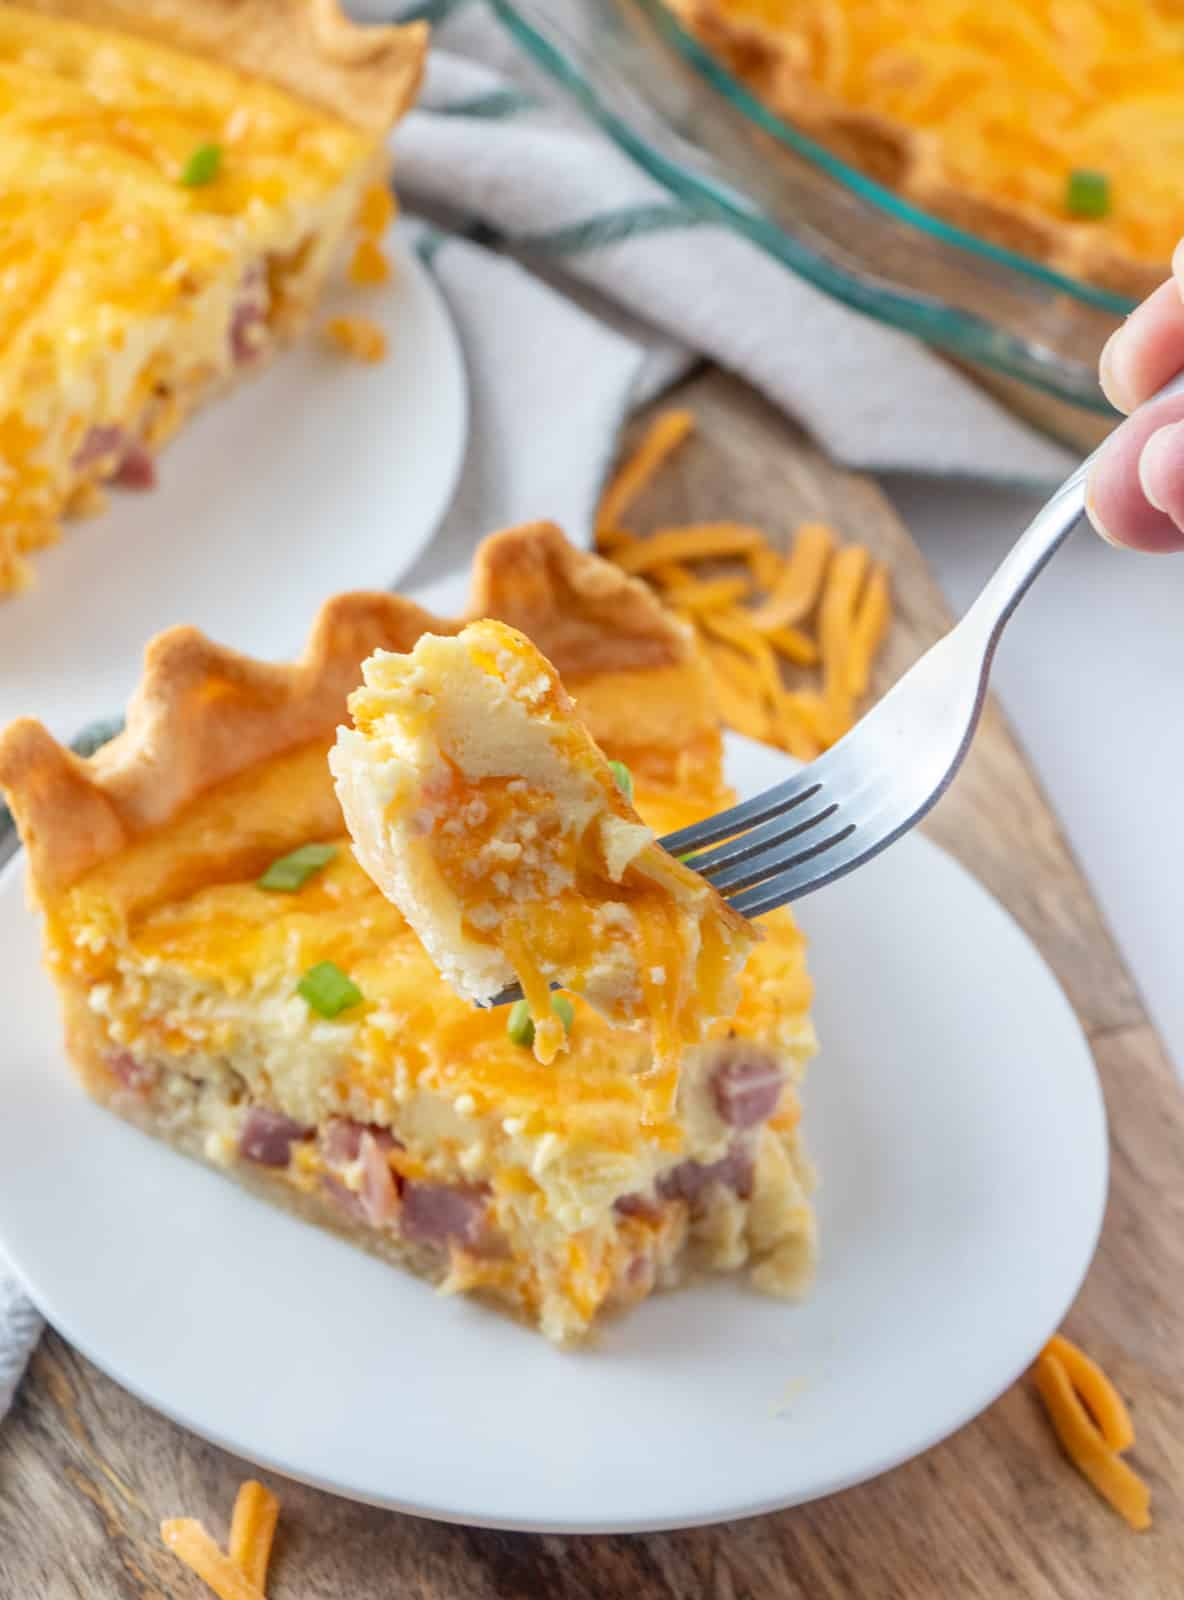 Forkful of a bite of quiche